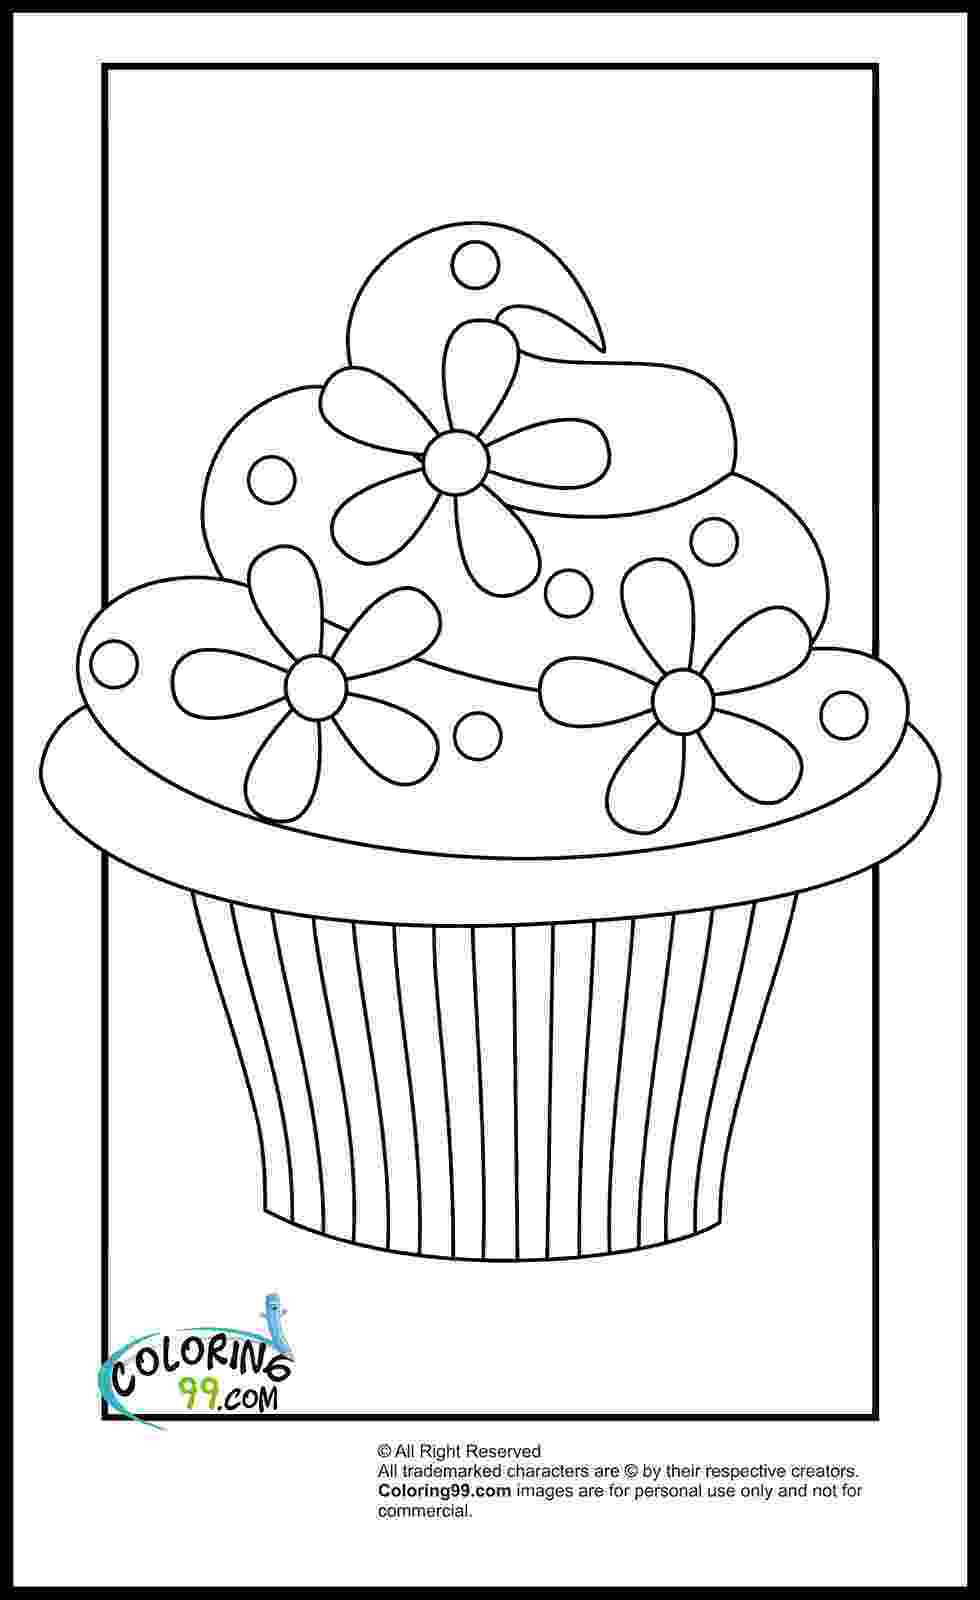 coloring pages printable coloring pages for 8910 year old girls to download and pages printable coloring